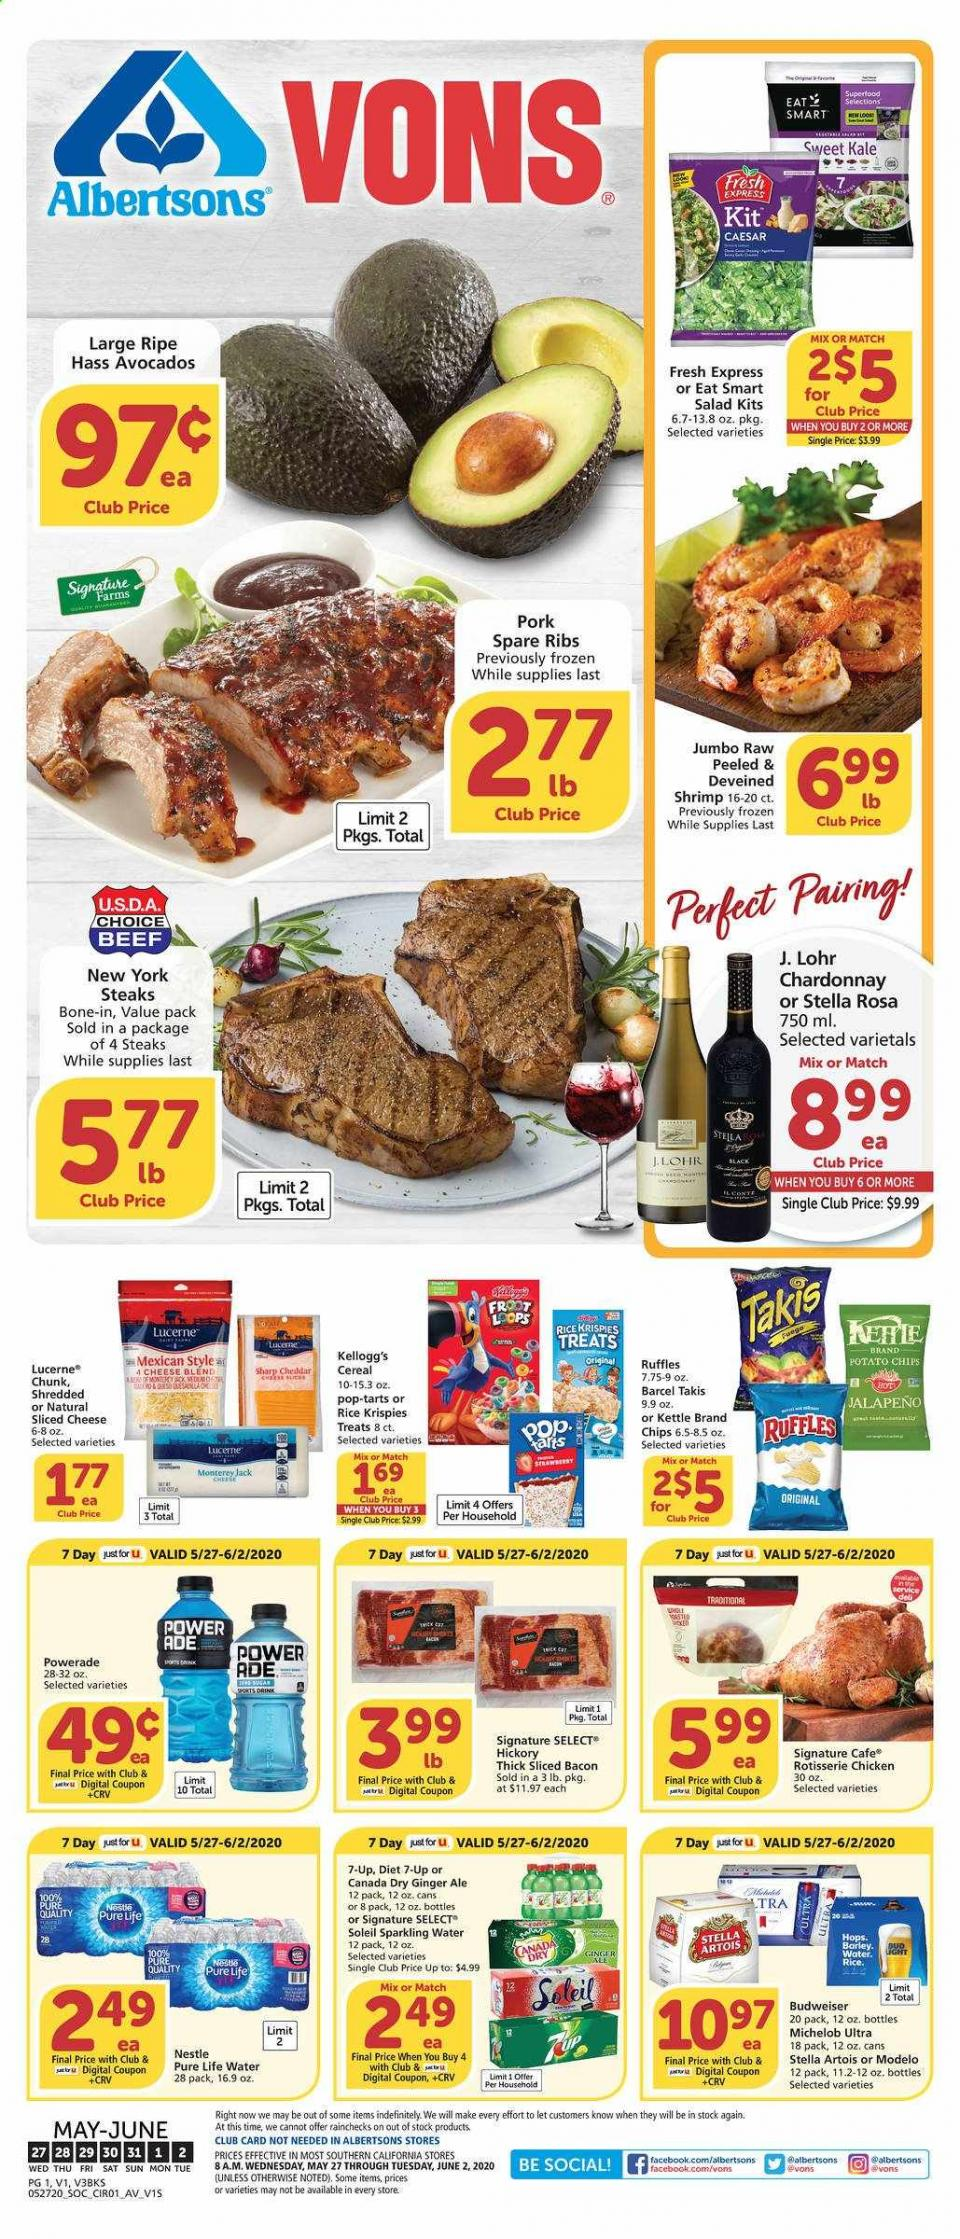 vons weekly ad may 27 jun 2 2020